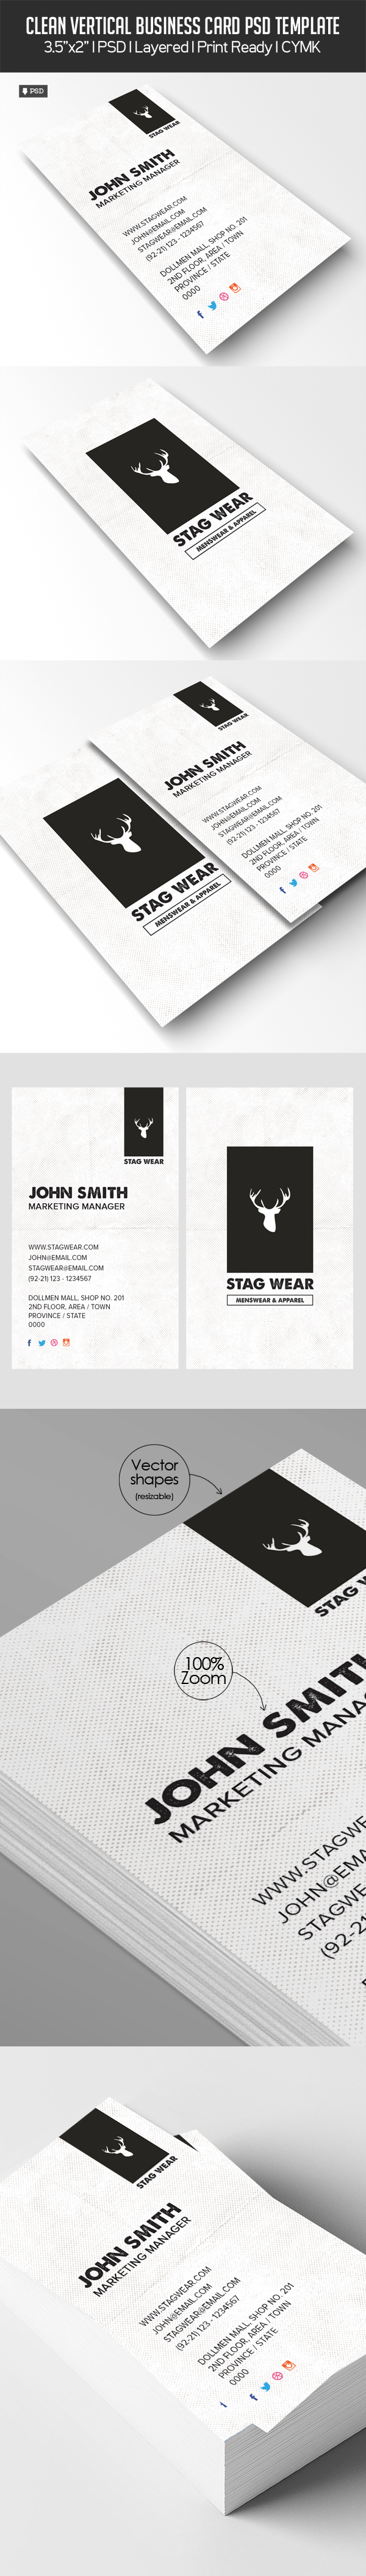 Freebie - Vertical Business Card PSD Template